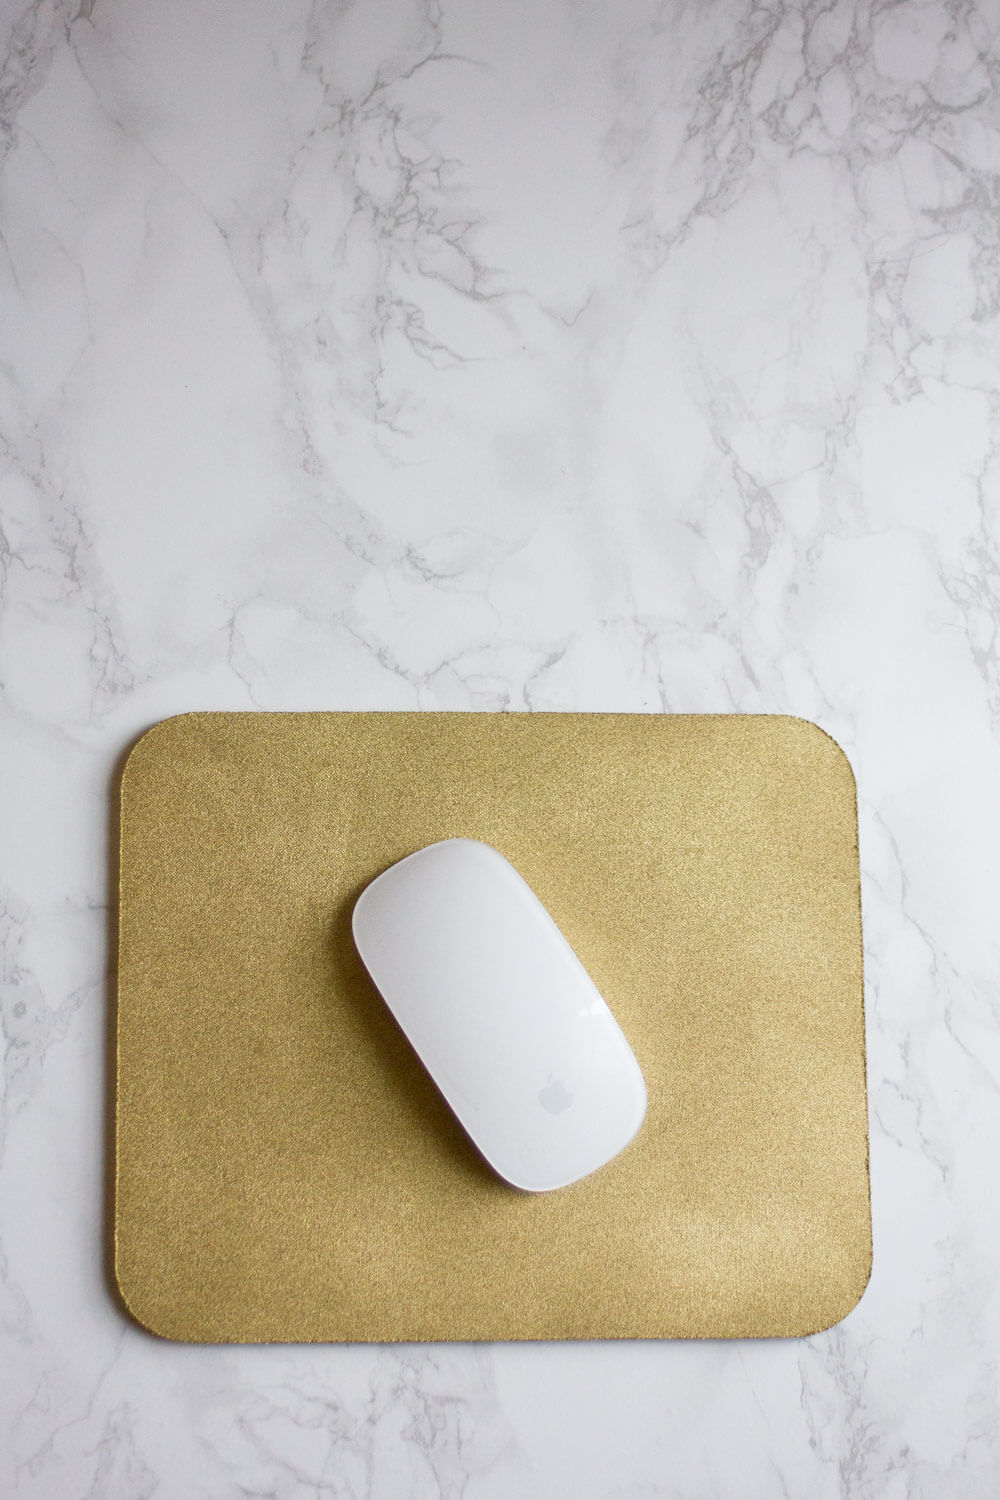 What do you do with free mouse pads? They're always so ugly, and who wants to be staring at a random logo all day? There's an easy solution — make a beautiful gold mouse pad out of it! Click through to find out how!